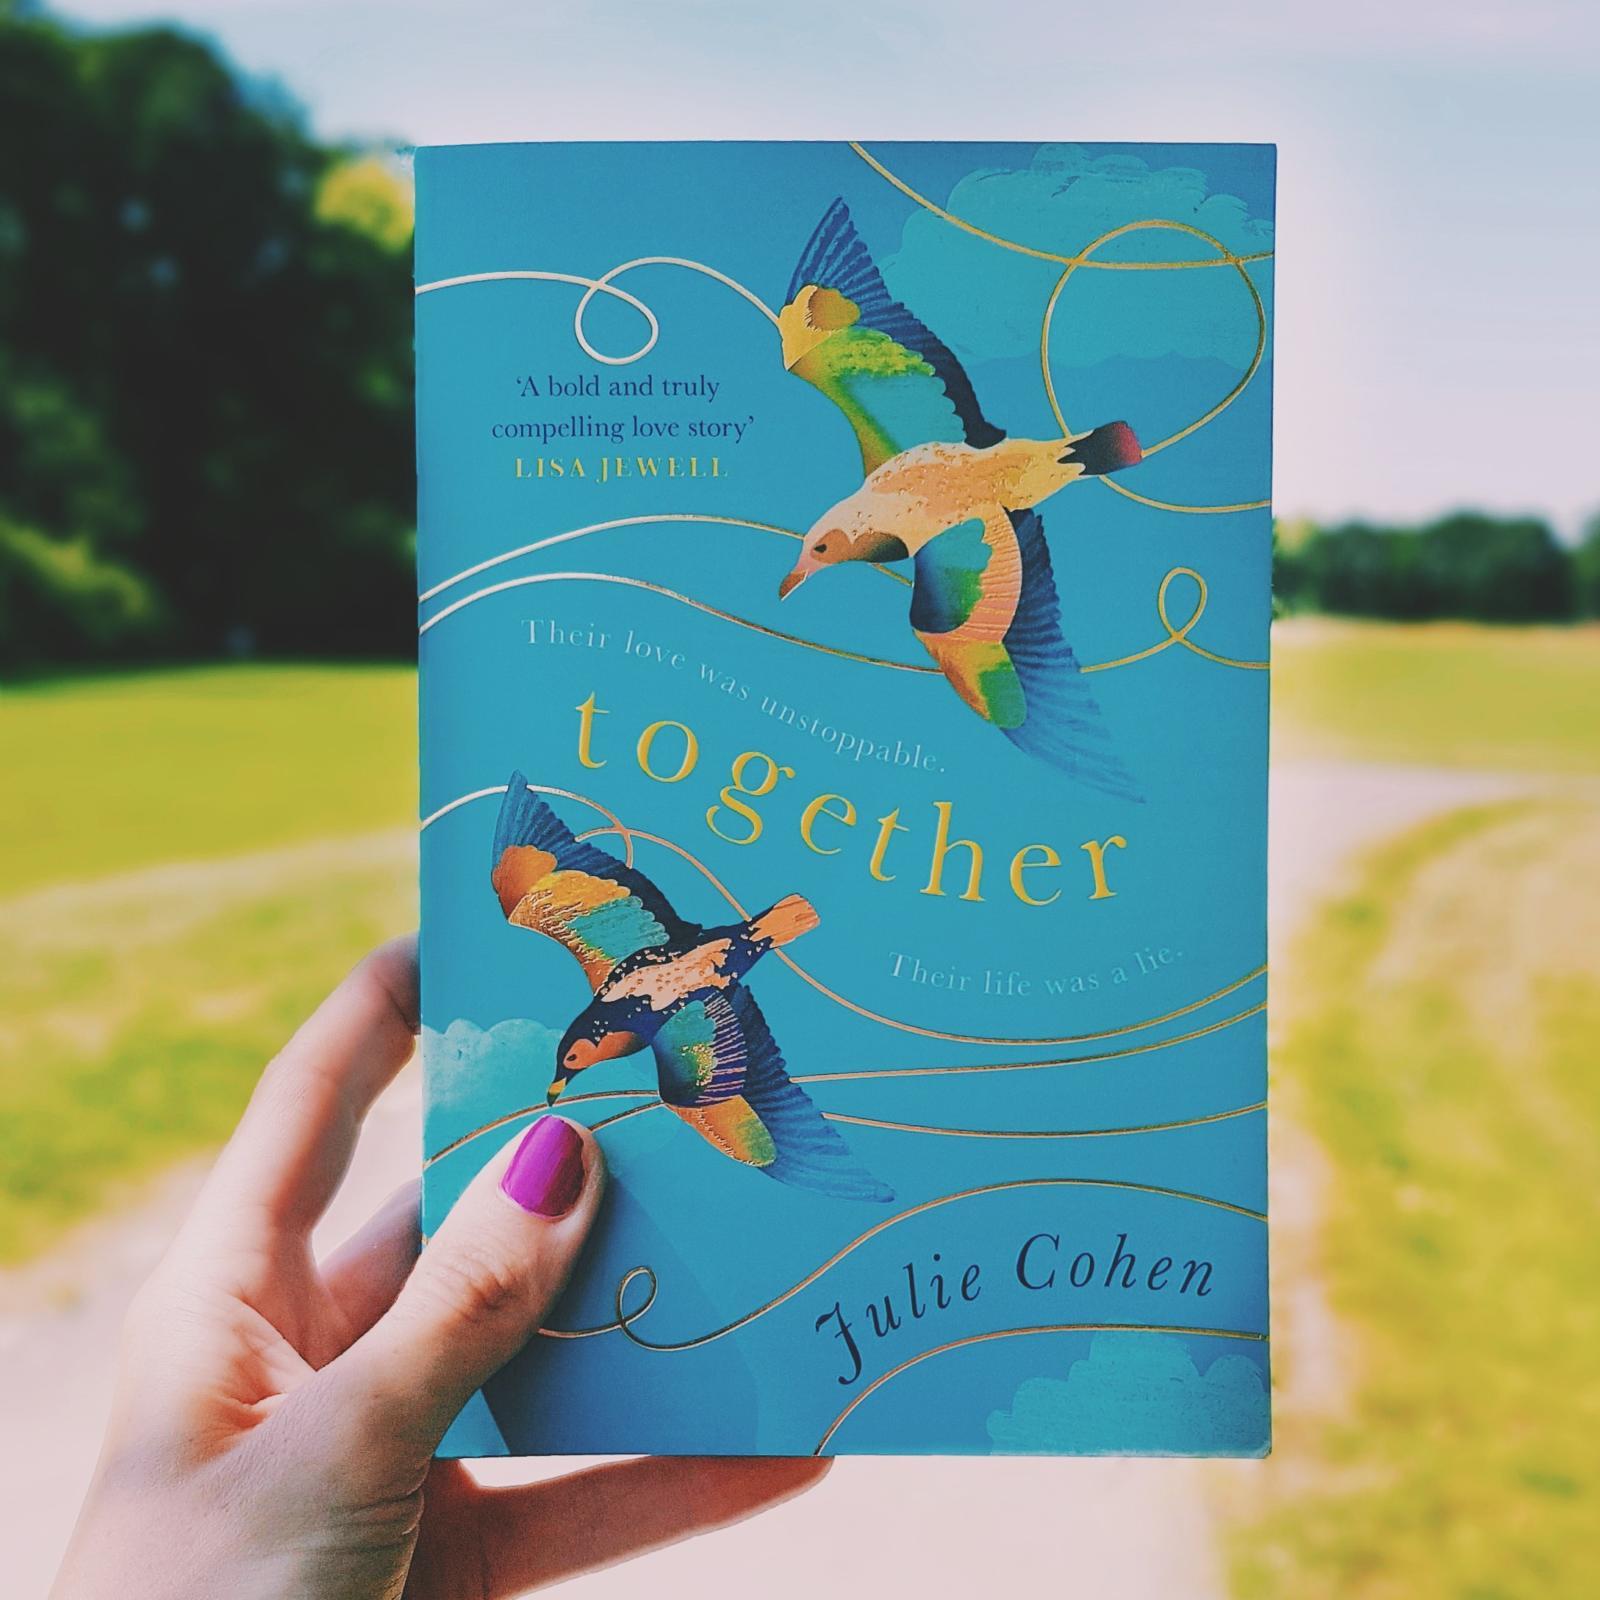 Together (Julie Cohen)